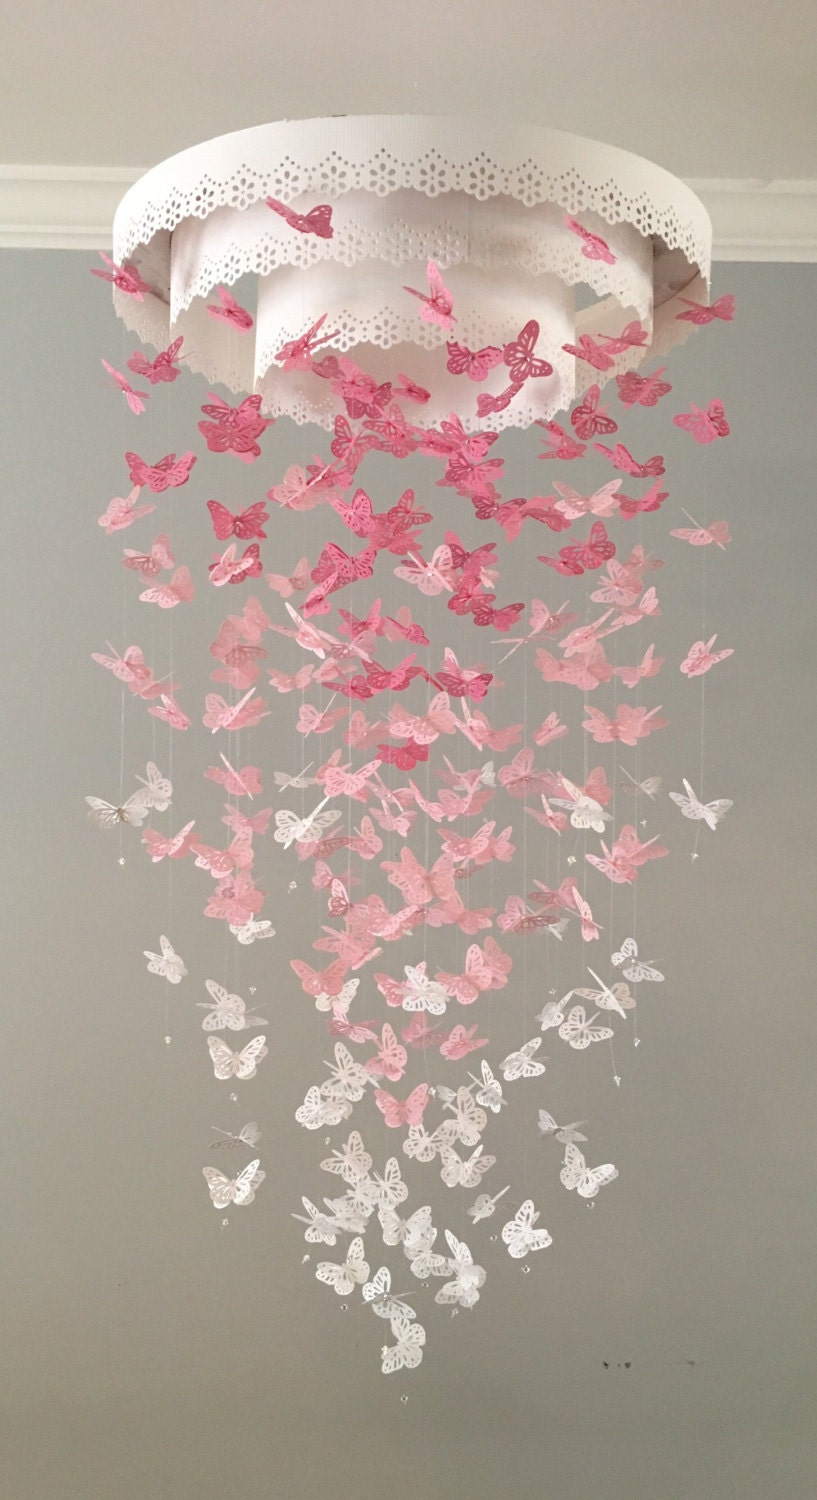 The original paper lace chandelier monarch butterfly mobile zoom aloadofball Choice Image